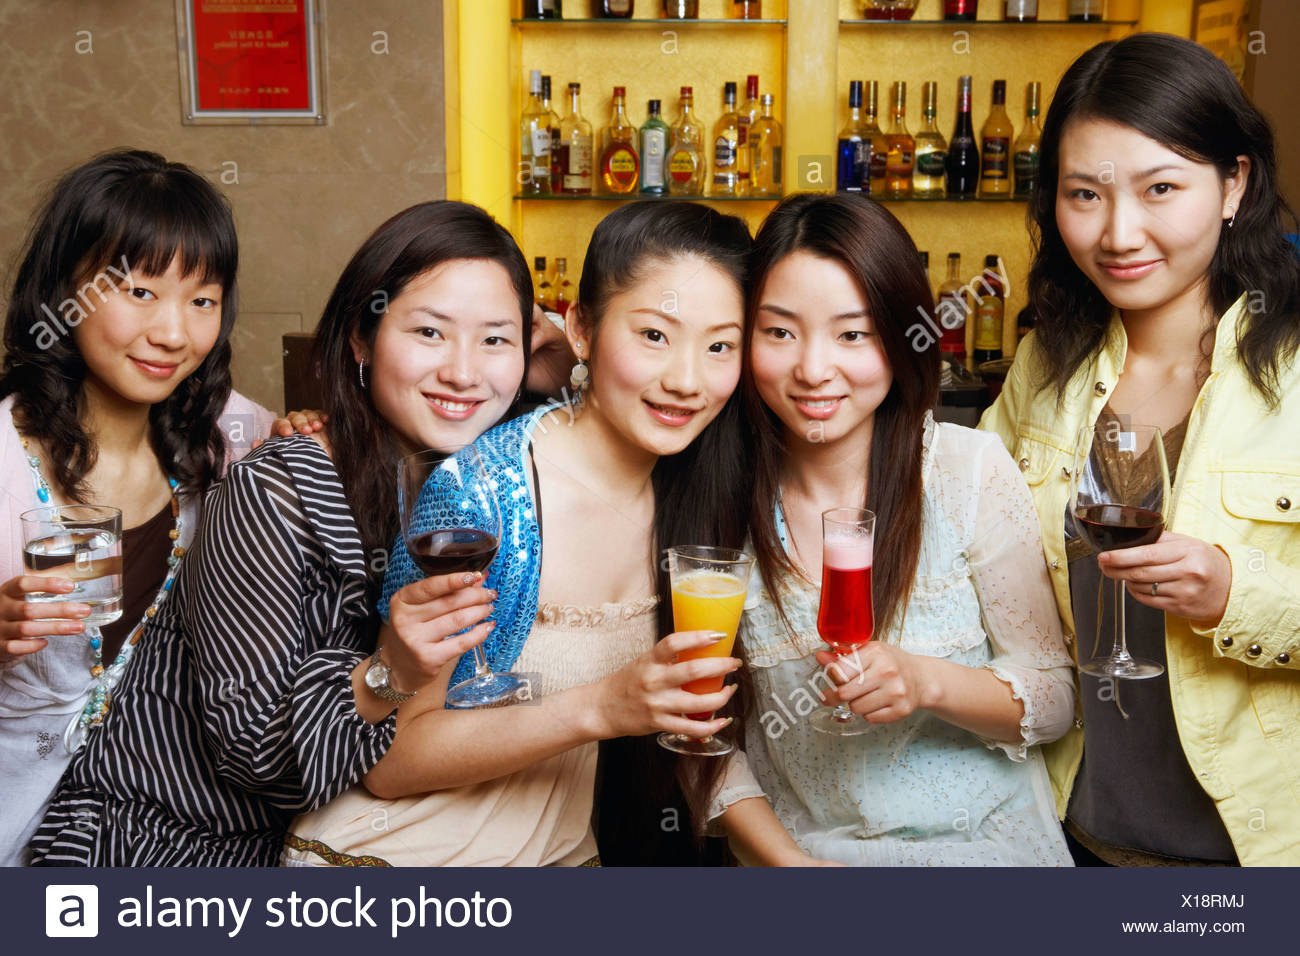 Portrait of three teenage girls and two young women holding drinks - Stock Image